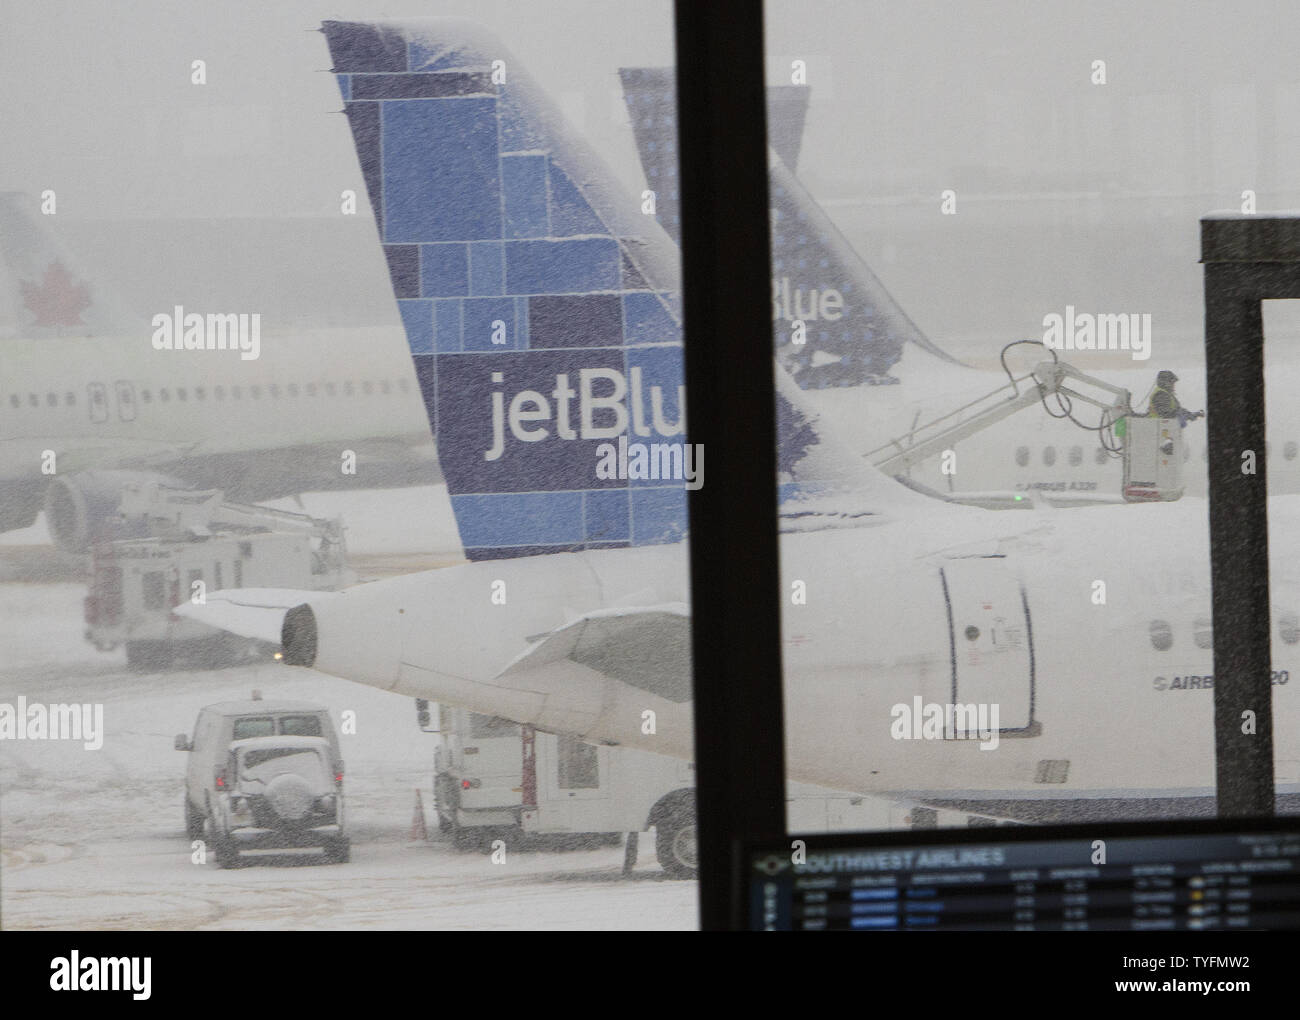 A de-icing crew moves among jetBlue aircraft at Newark Airport in Newark, New Jersey on February 3, 2014.  6-8 of inches of snow expected to fall in the tri-state area causes travel delays and cancellations.    UPI/Gary C. Caskey - Stock Image